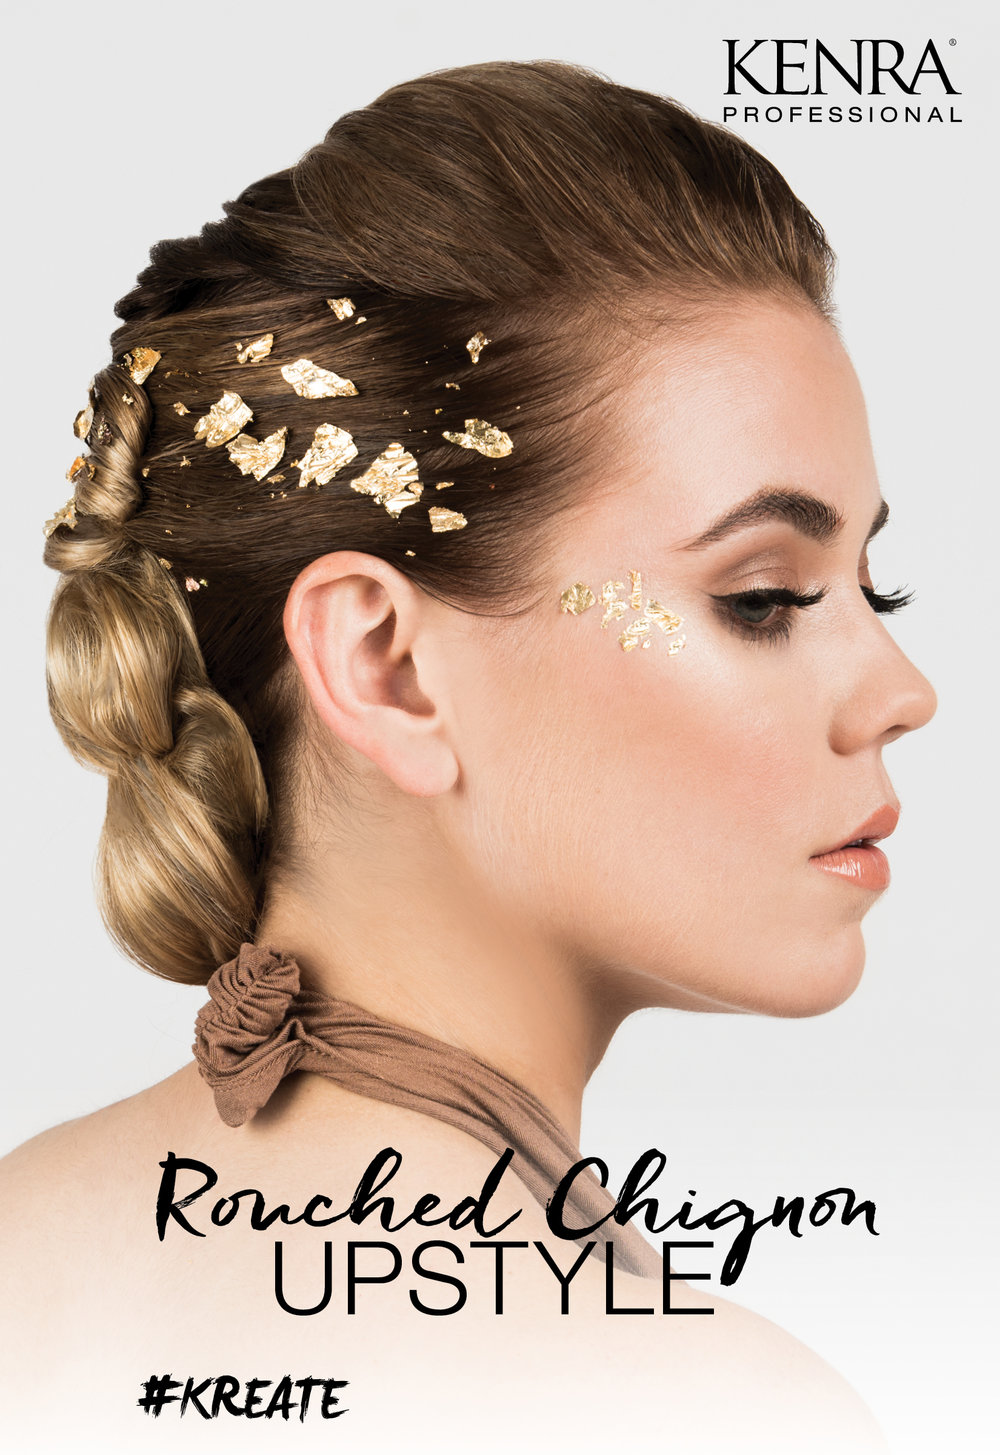 00000_Rouched_Chignon_Upstyle.jpg